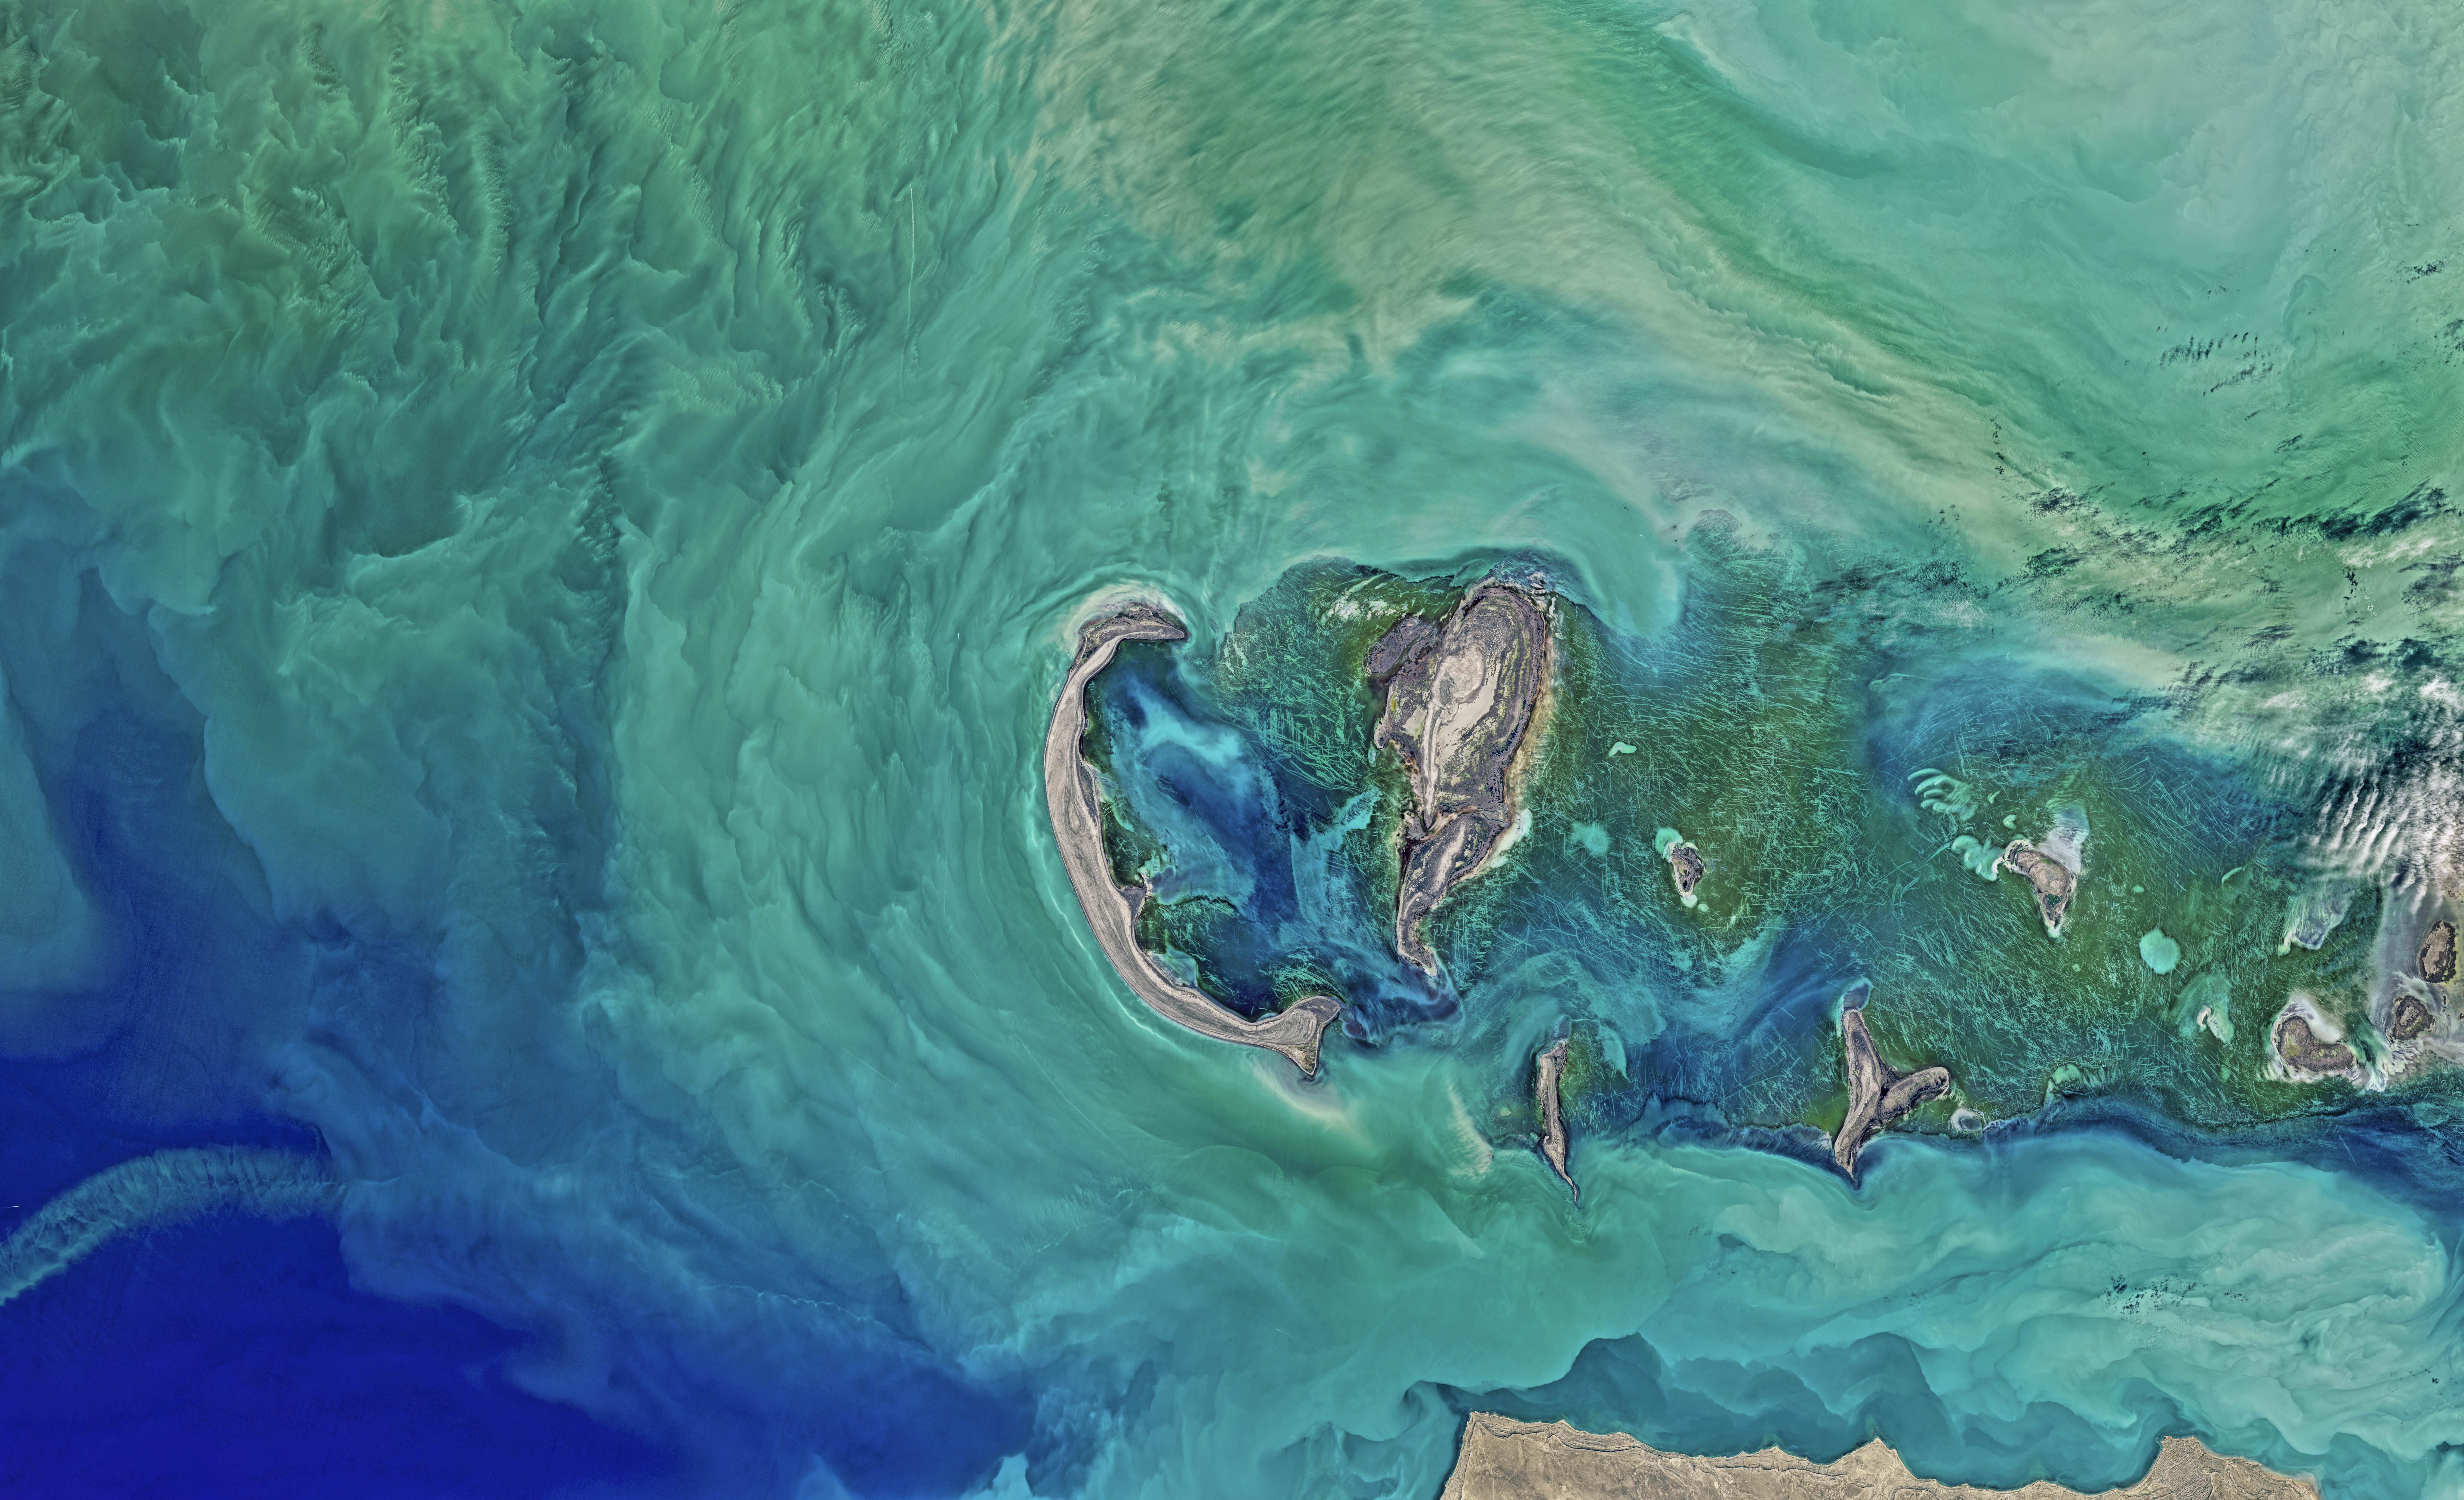 1920x1080 caspian sea 8k laptop full hd 1080p hd 4k wallpapers images backgrounds photos and - 4k wallpaper download ...